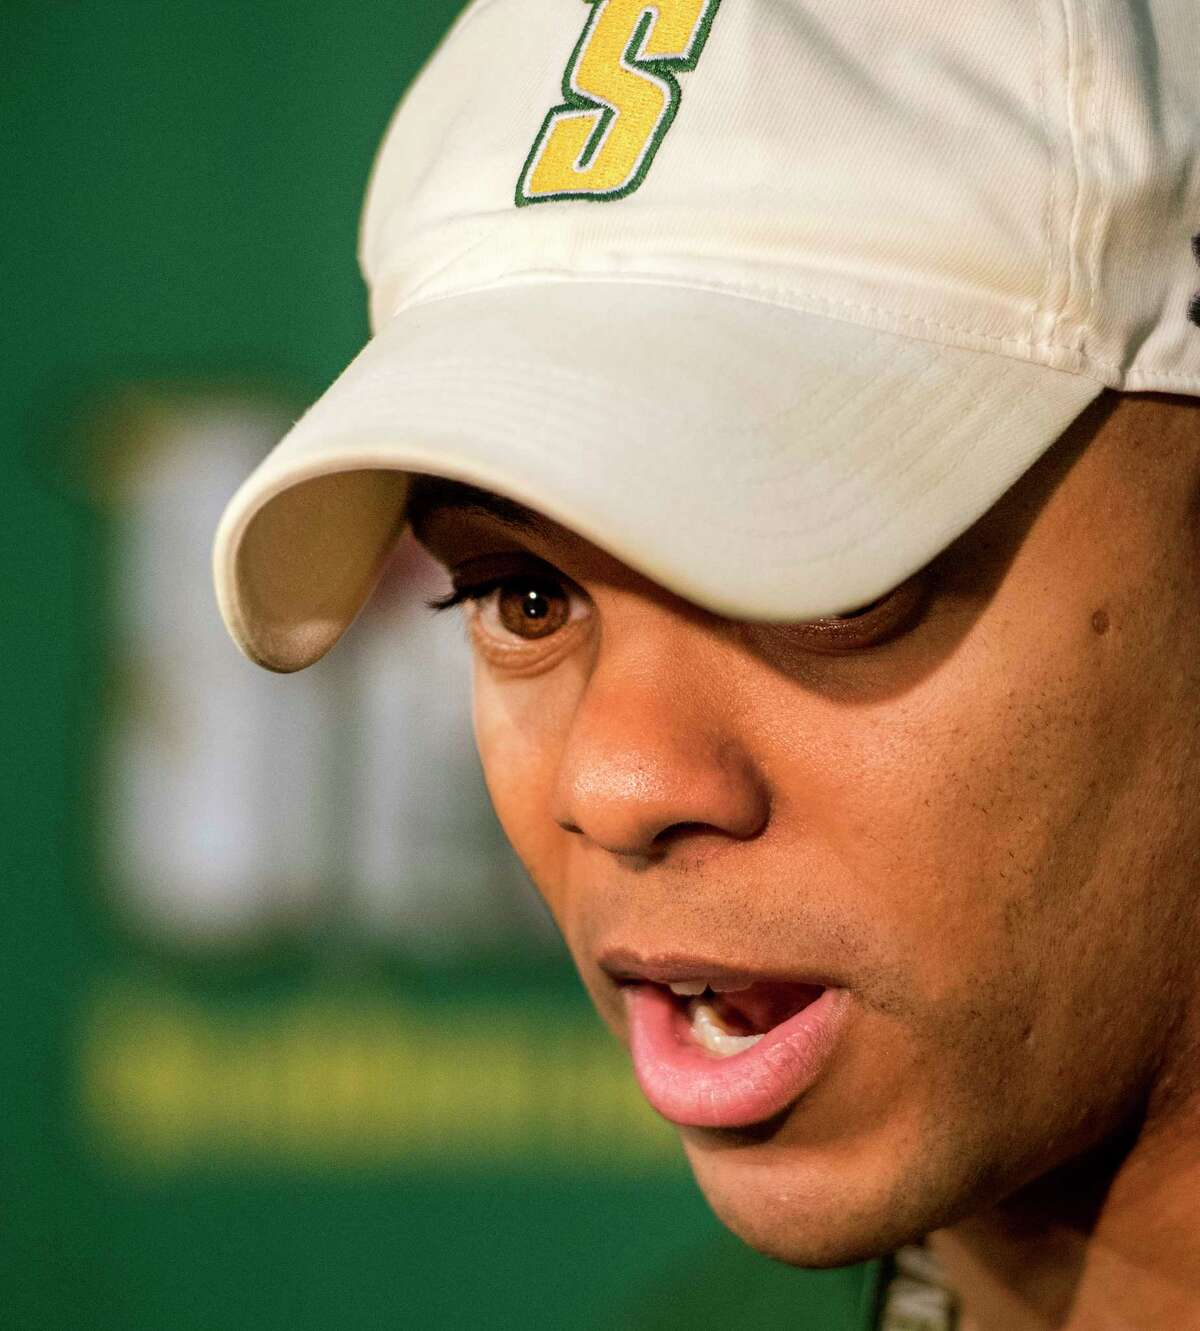 Head Coach Jamion Christian speaks to the media during open practice for the Siena College Men's Basketball Team at the Alumni Recreation Center on the Siena Campus Tuesday Oct. 2, 2018 in Loudonville, N.Y. (Skip Dickstein/Times Union)